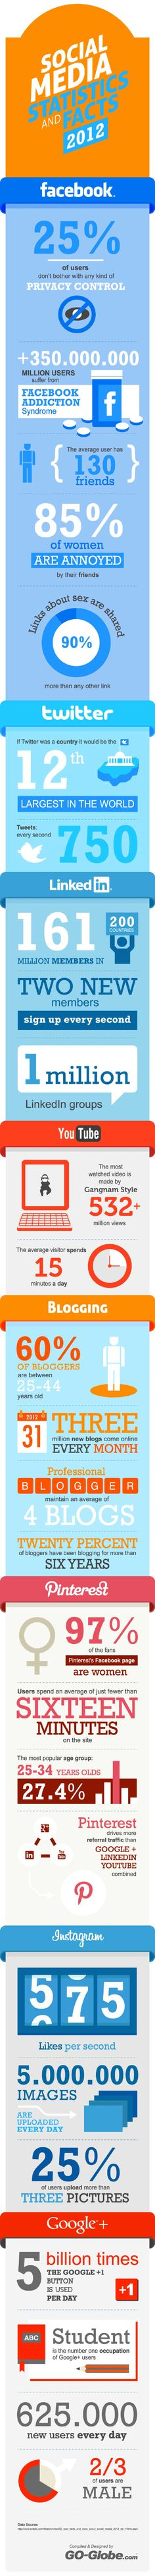 The Latest 27 Social Media Facts, Figures and Statistics for 2012 – Infographic